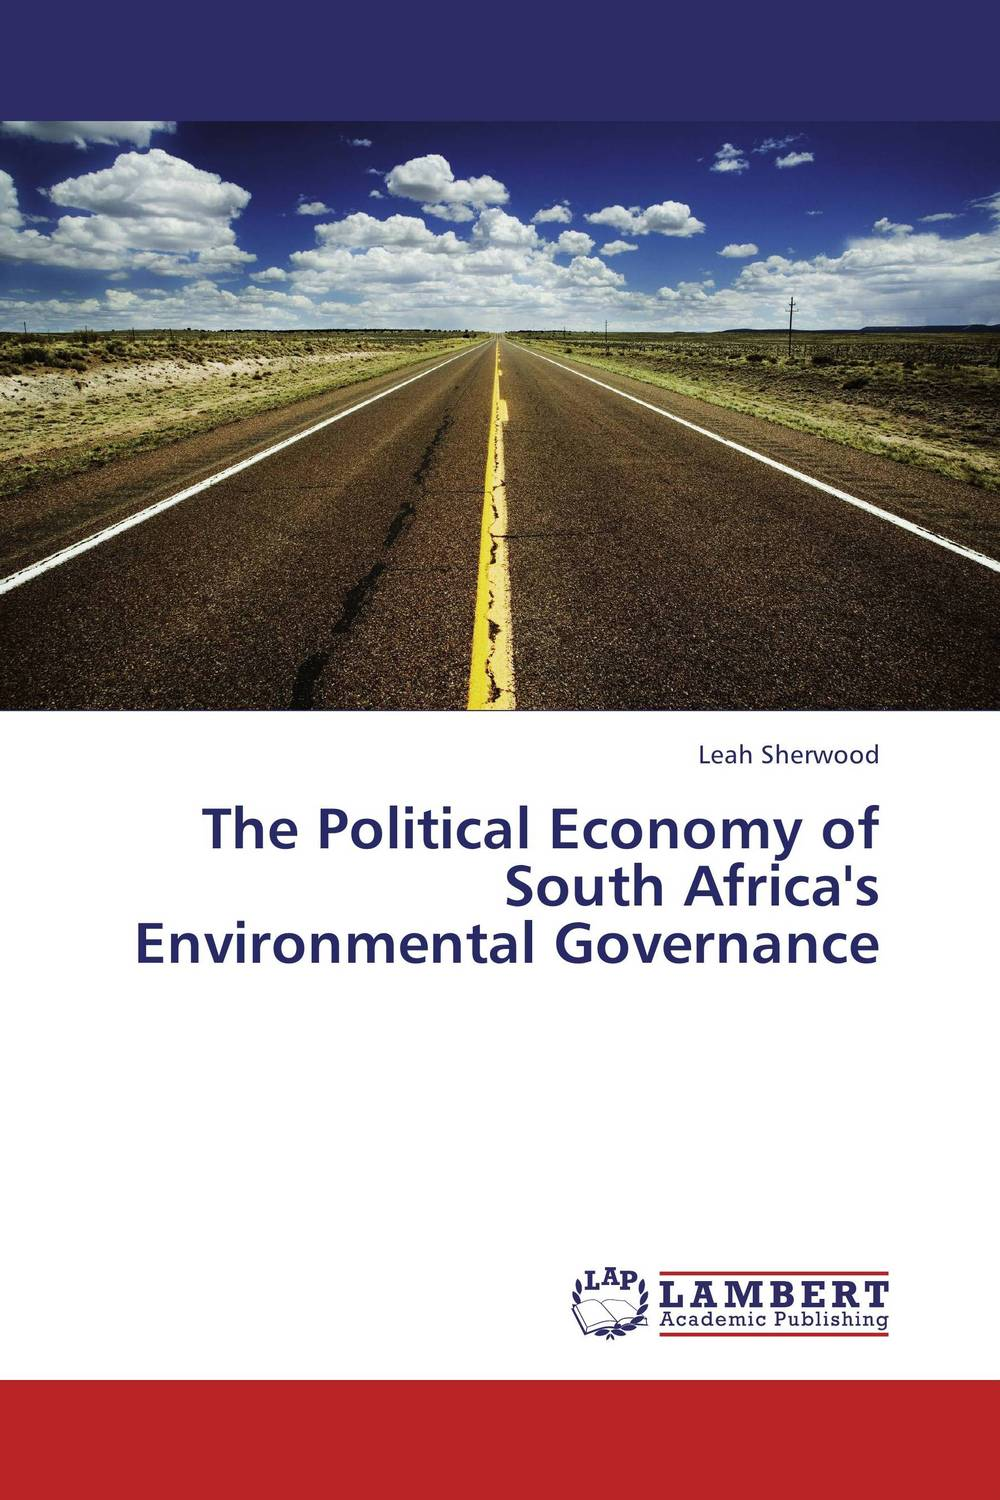 The Political Economy of South Africa's Environmental Governance